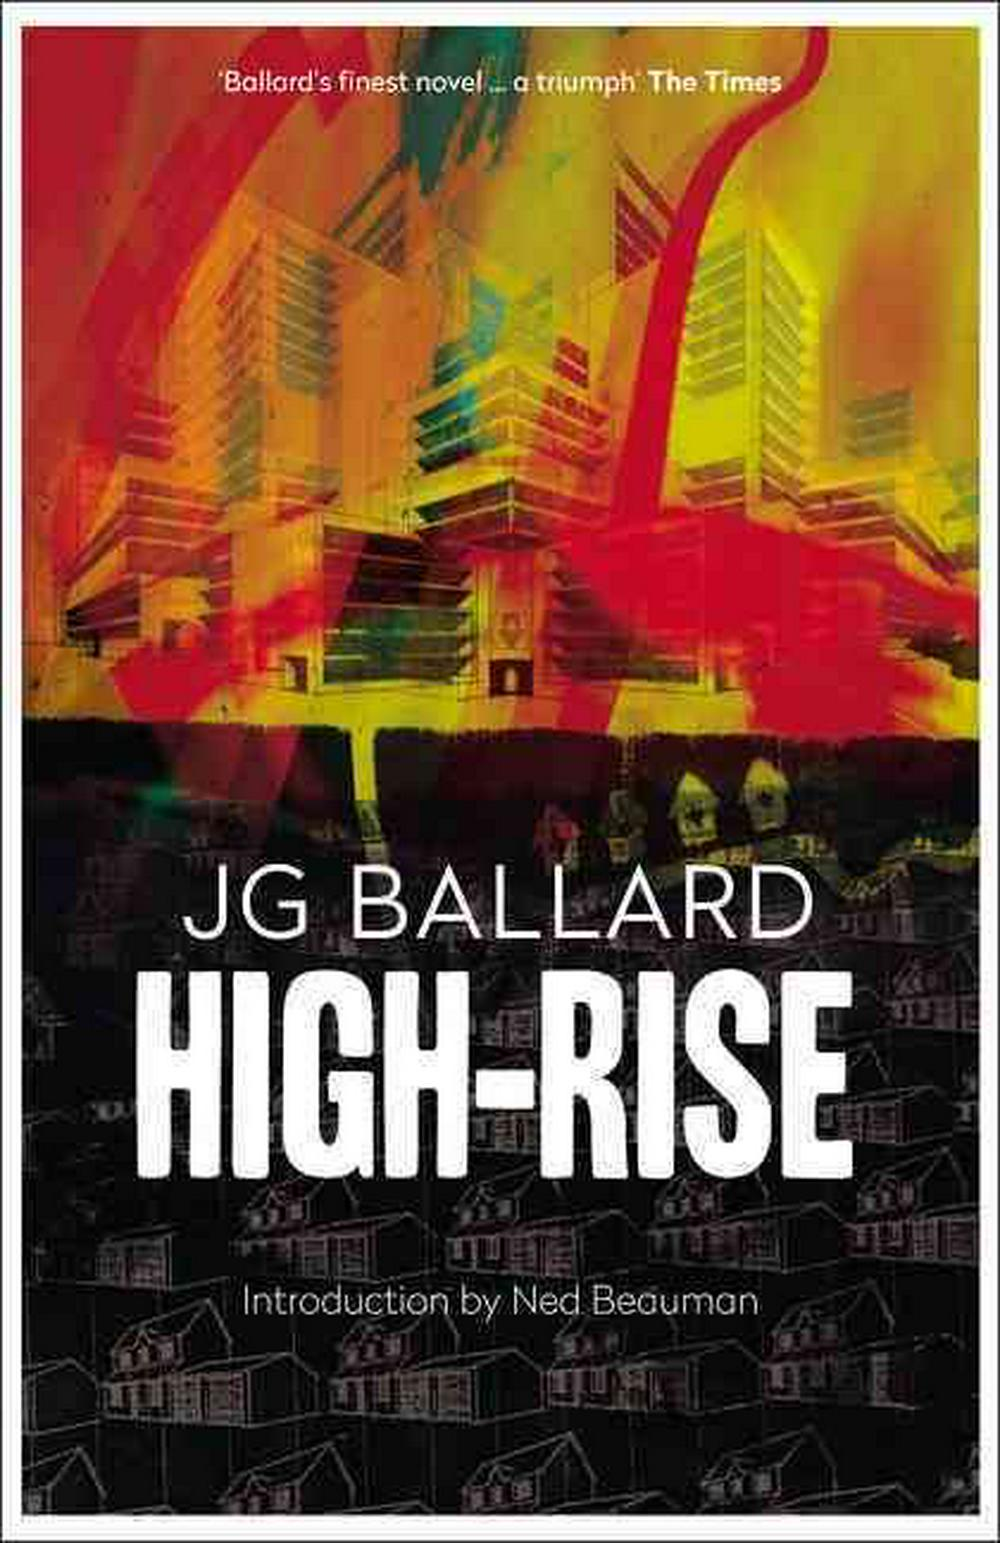 High-rise by J. G. Ballard, ISBN: 9780586044568